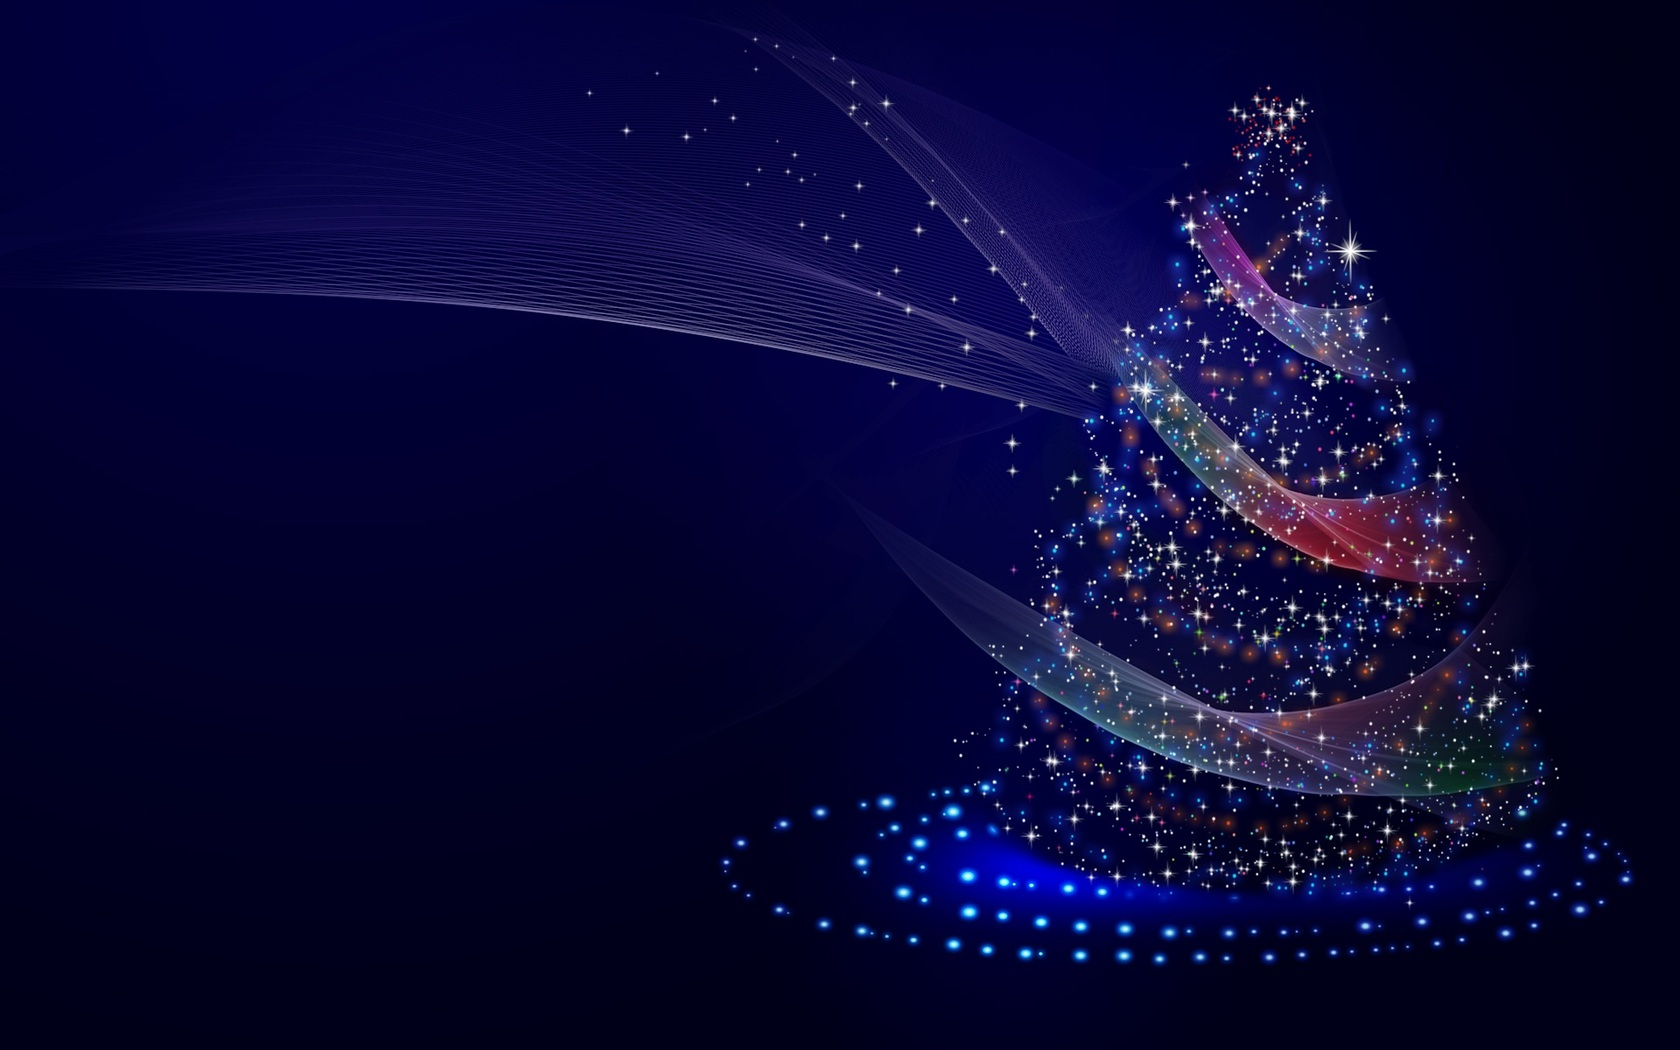 christmas-tree-illustrations-vx.jpg